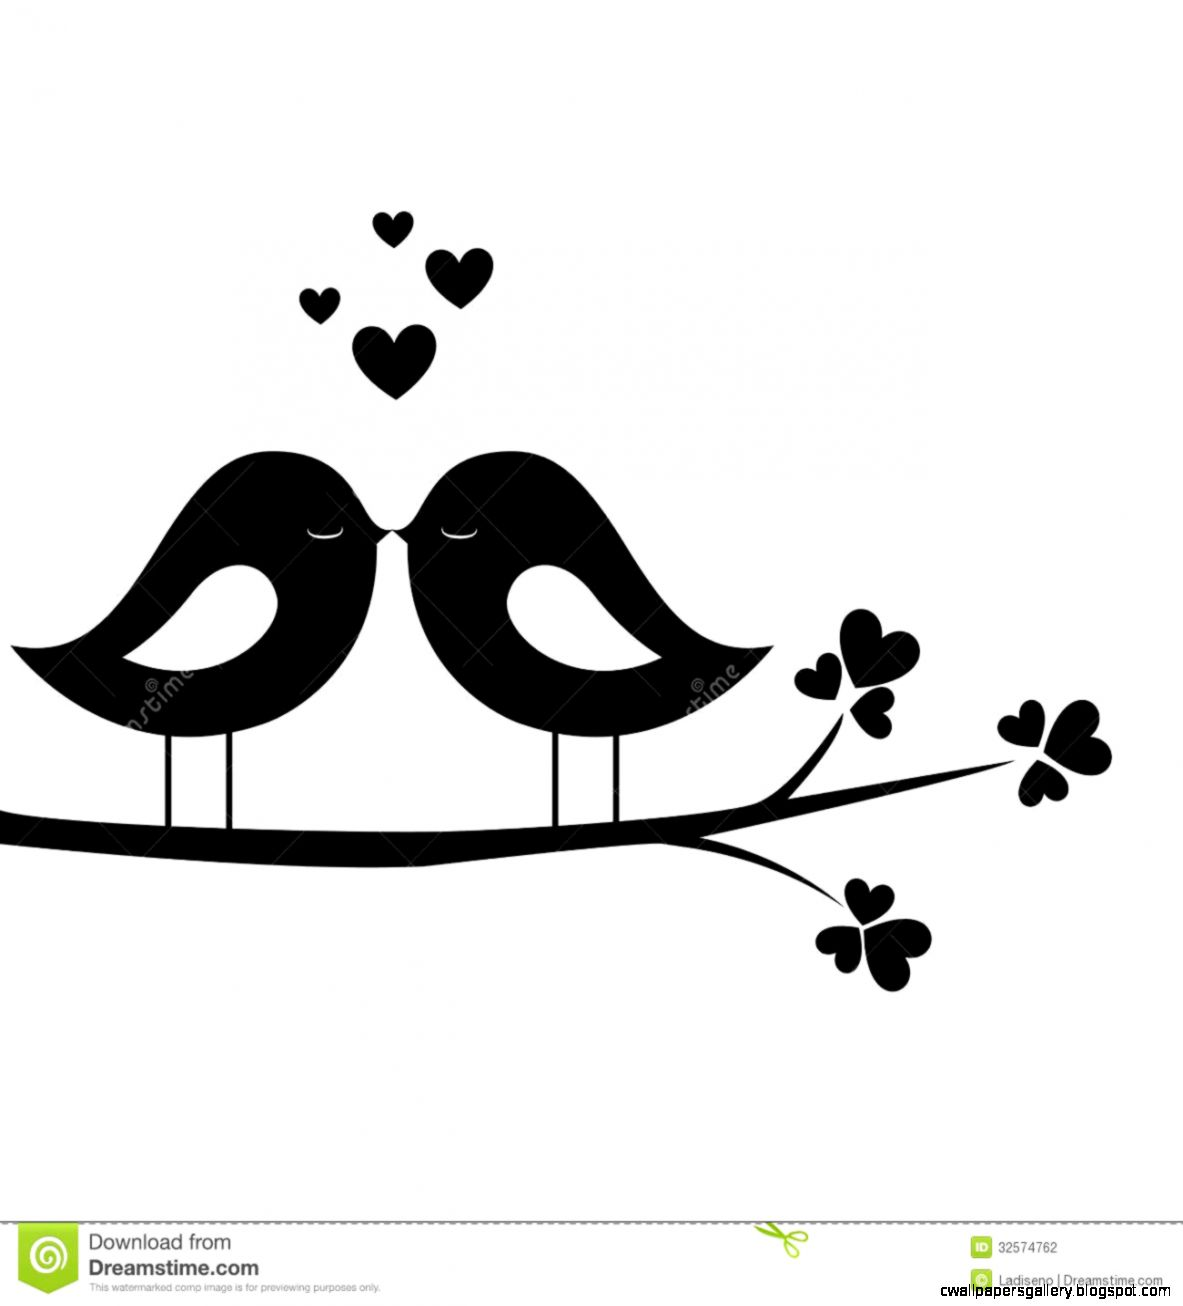 Love Bird Silhouette Clip Art.